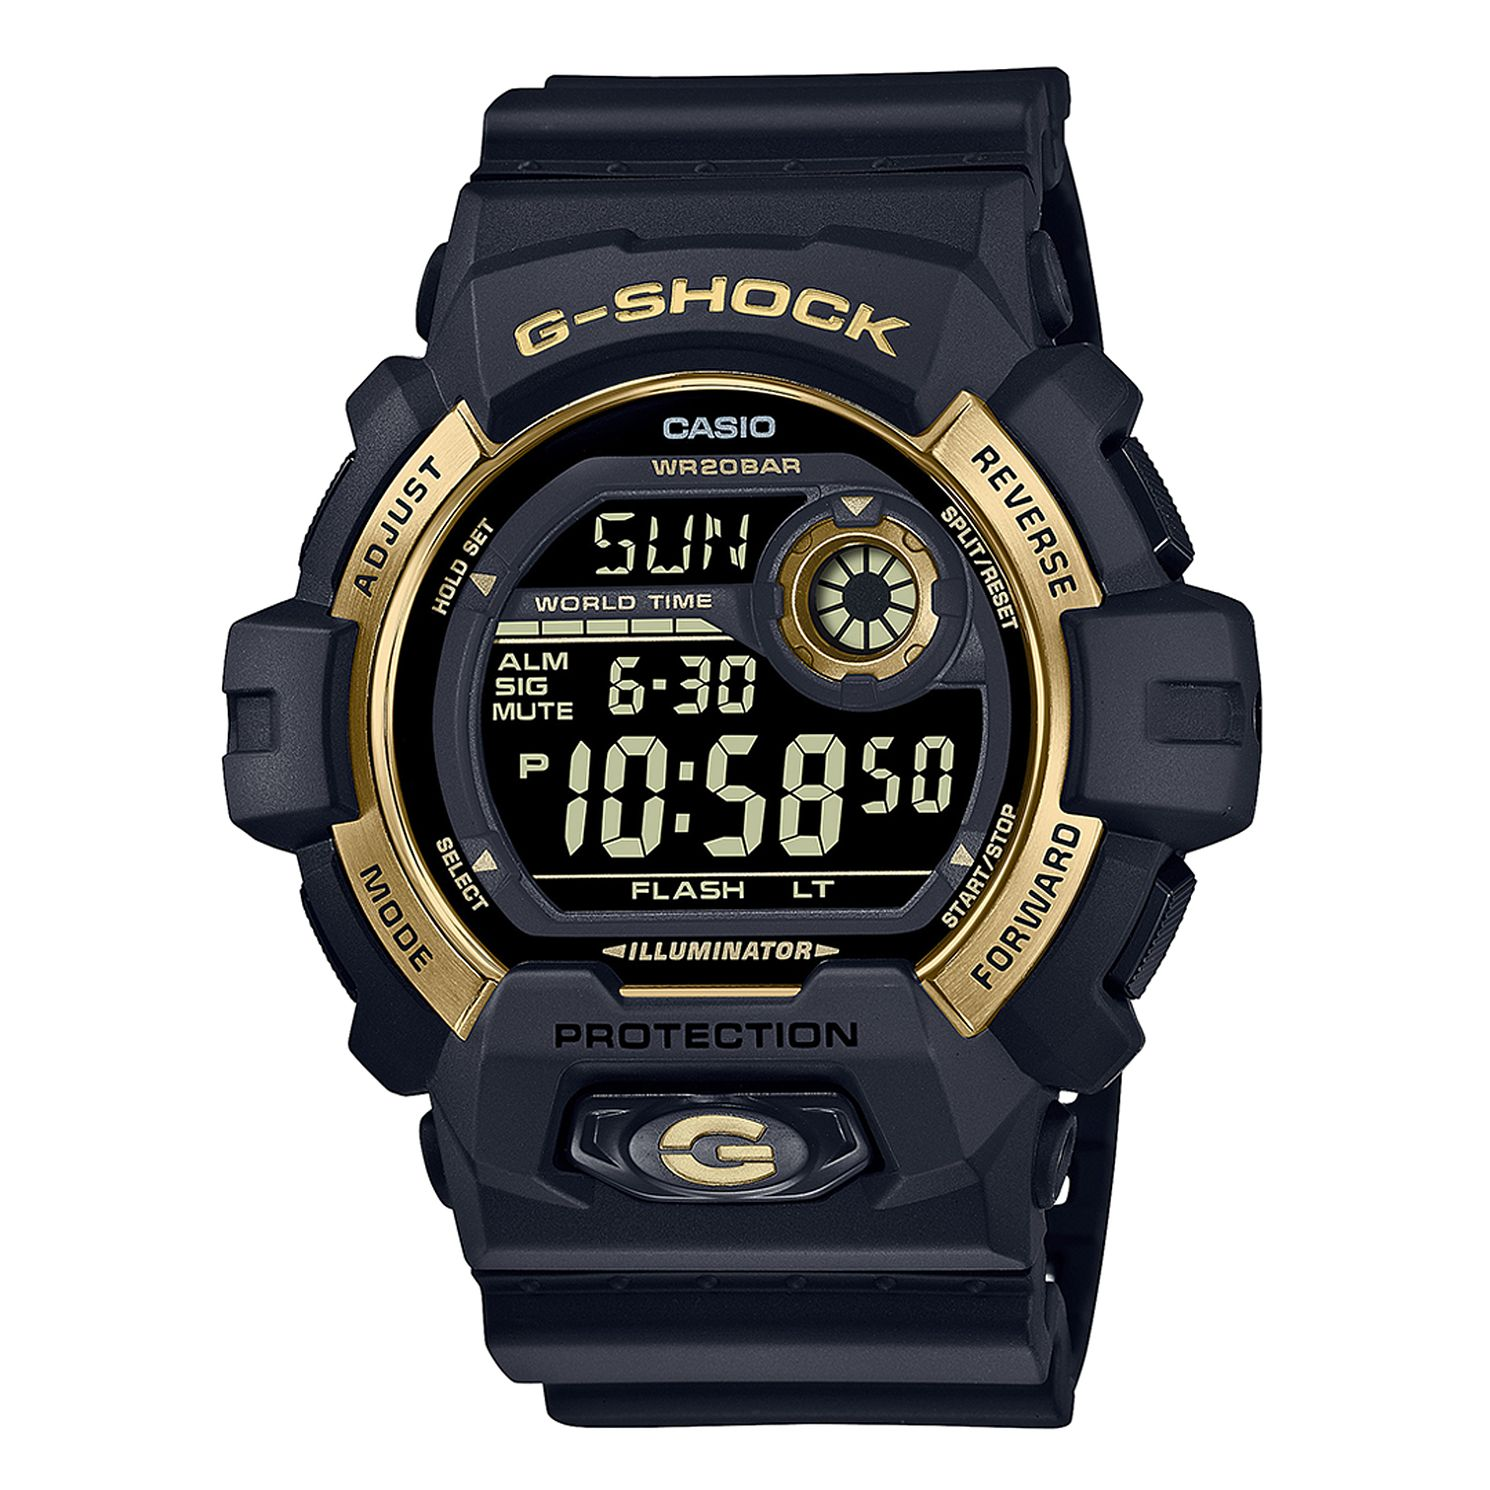 Casio G-Shock Black Resin Strap Watch - Product number 1097016